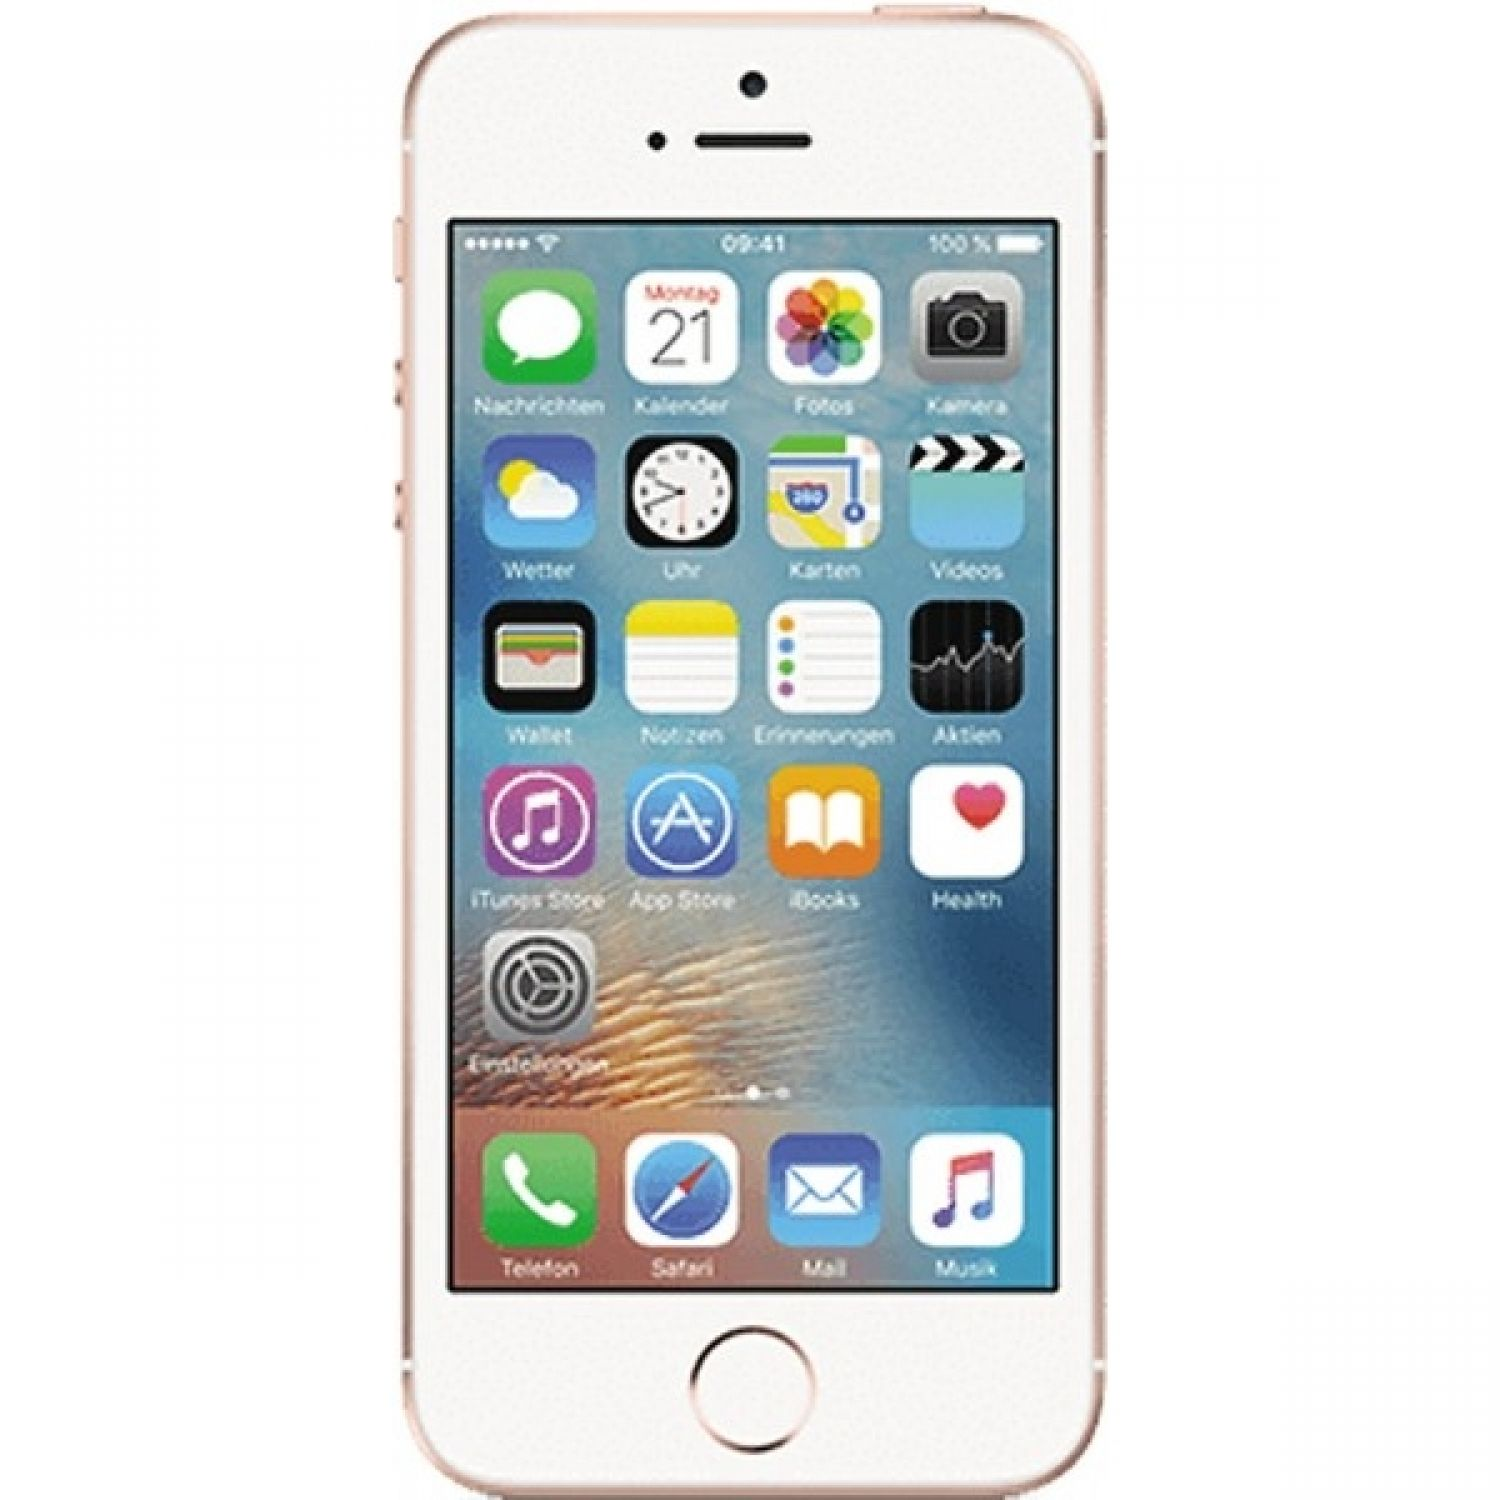 Comprar Iphone 4s Libre Nuevo Detalles De Apple Iphone Se 32gb Rosado Gold Lte Ios Smartphone Libre 4